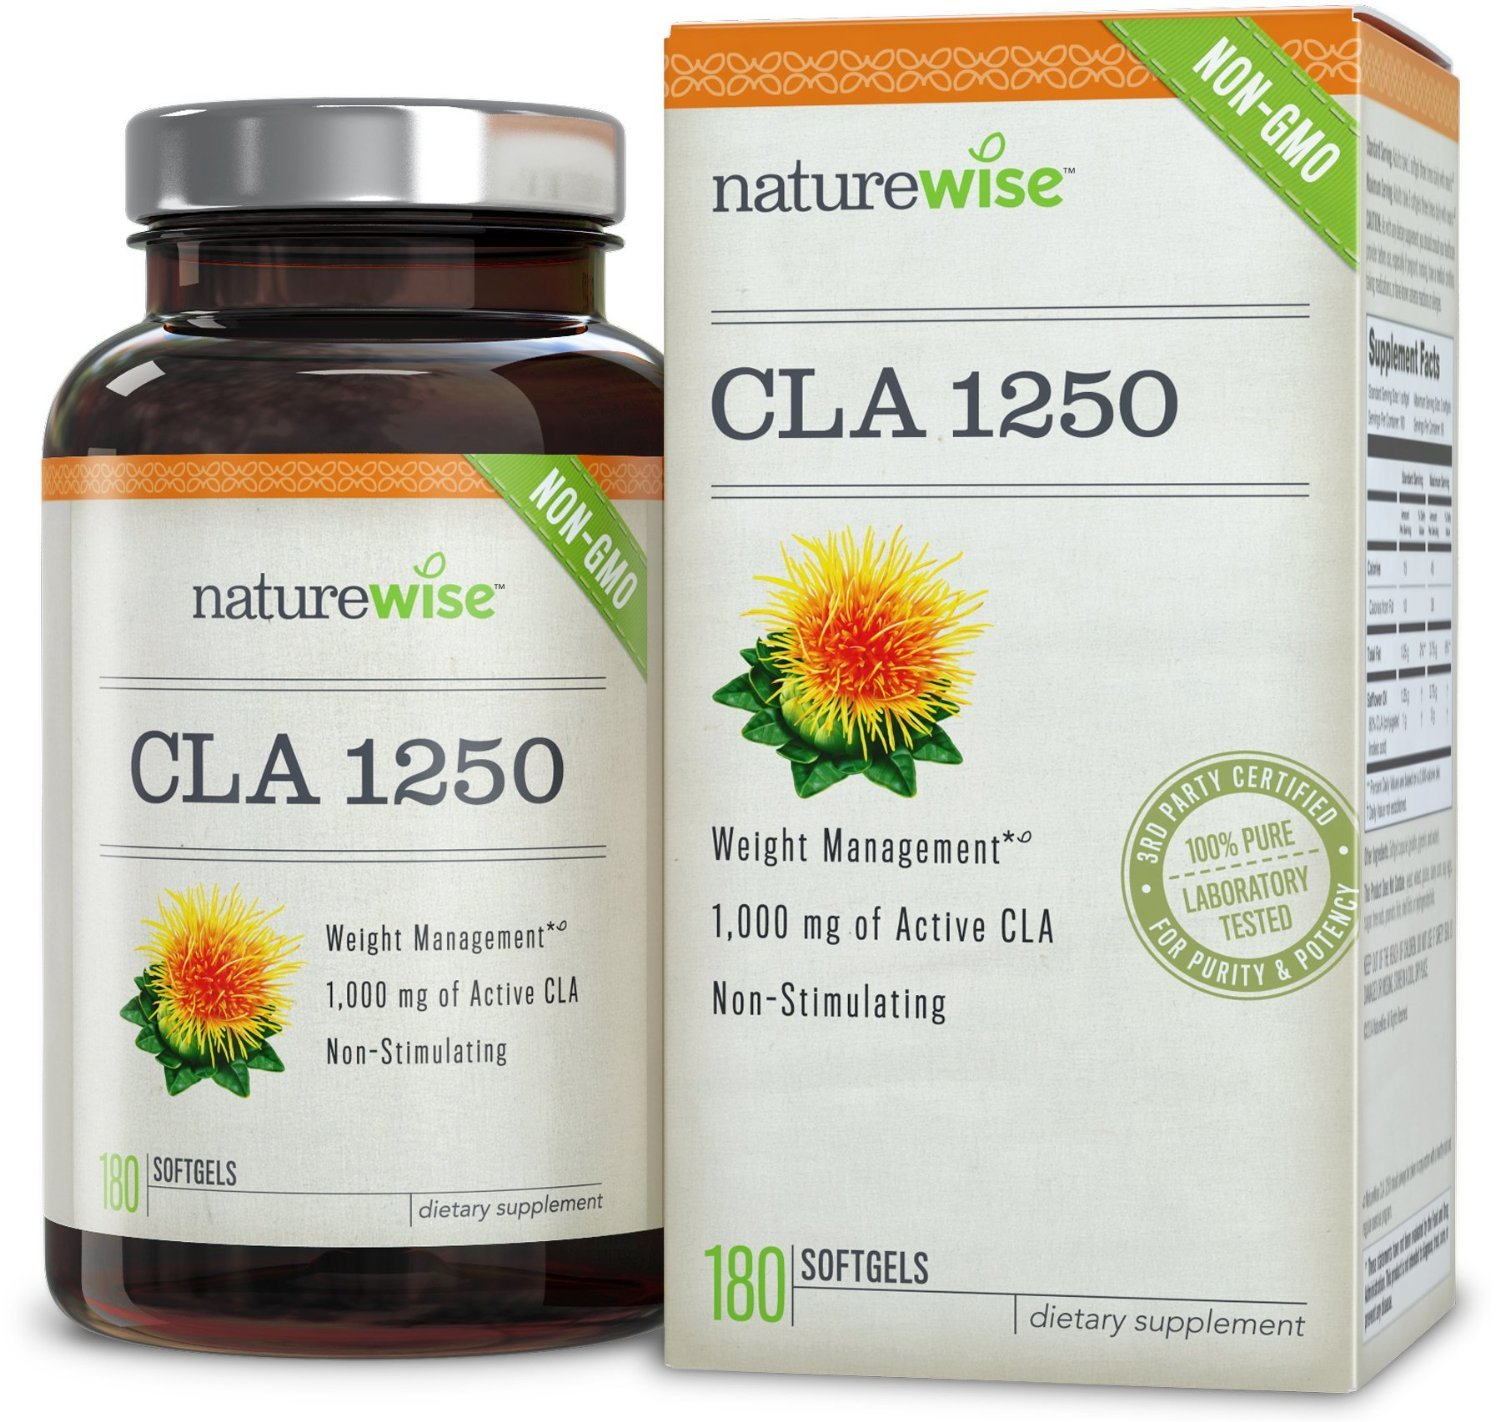 Nature Wise CLA 1250  (180 soft gells) for Weight Loss - $49.99